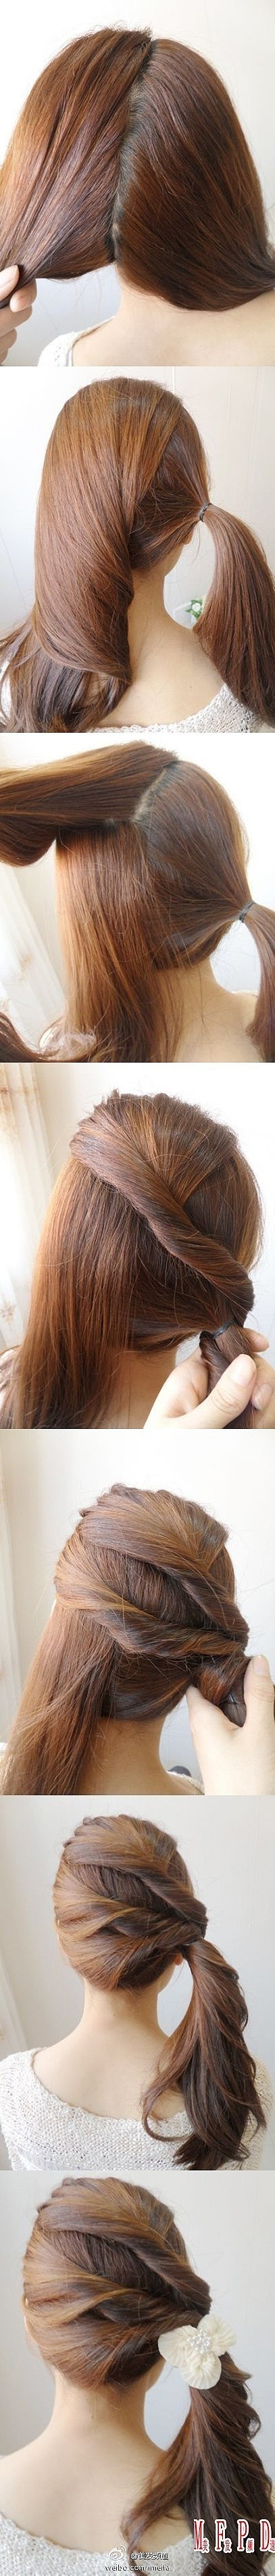 Hairstyle Tutorials (16)